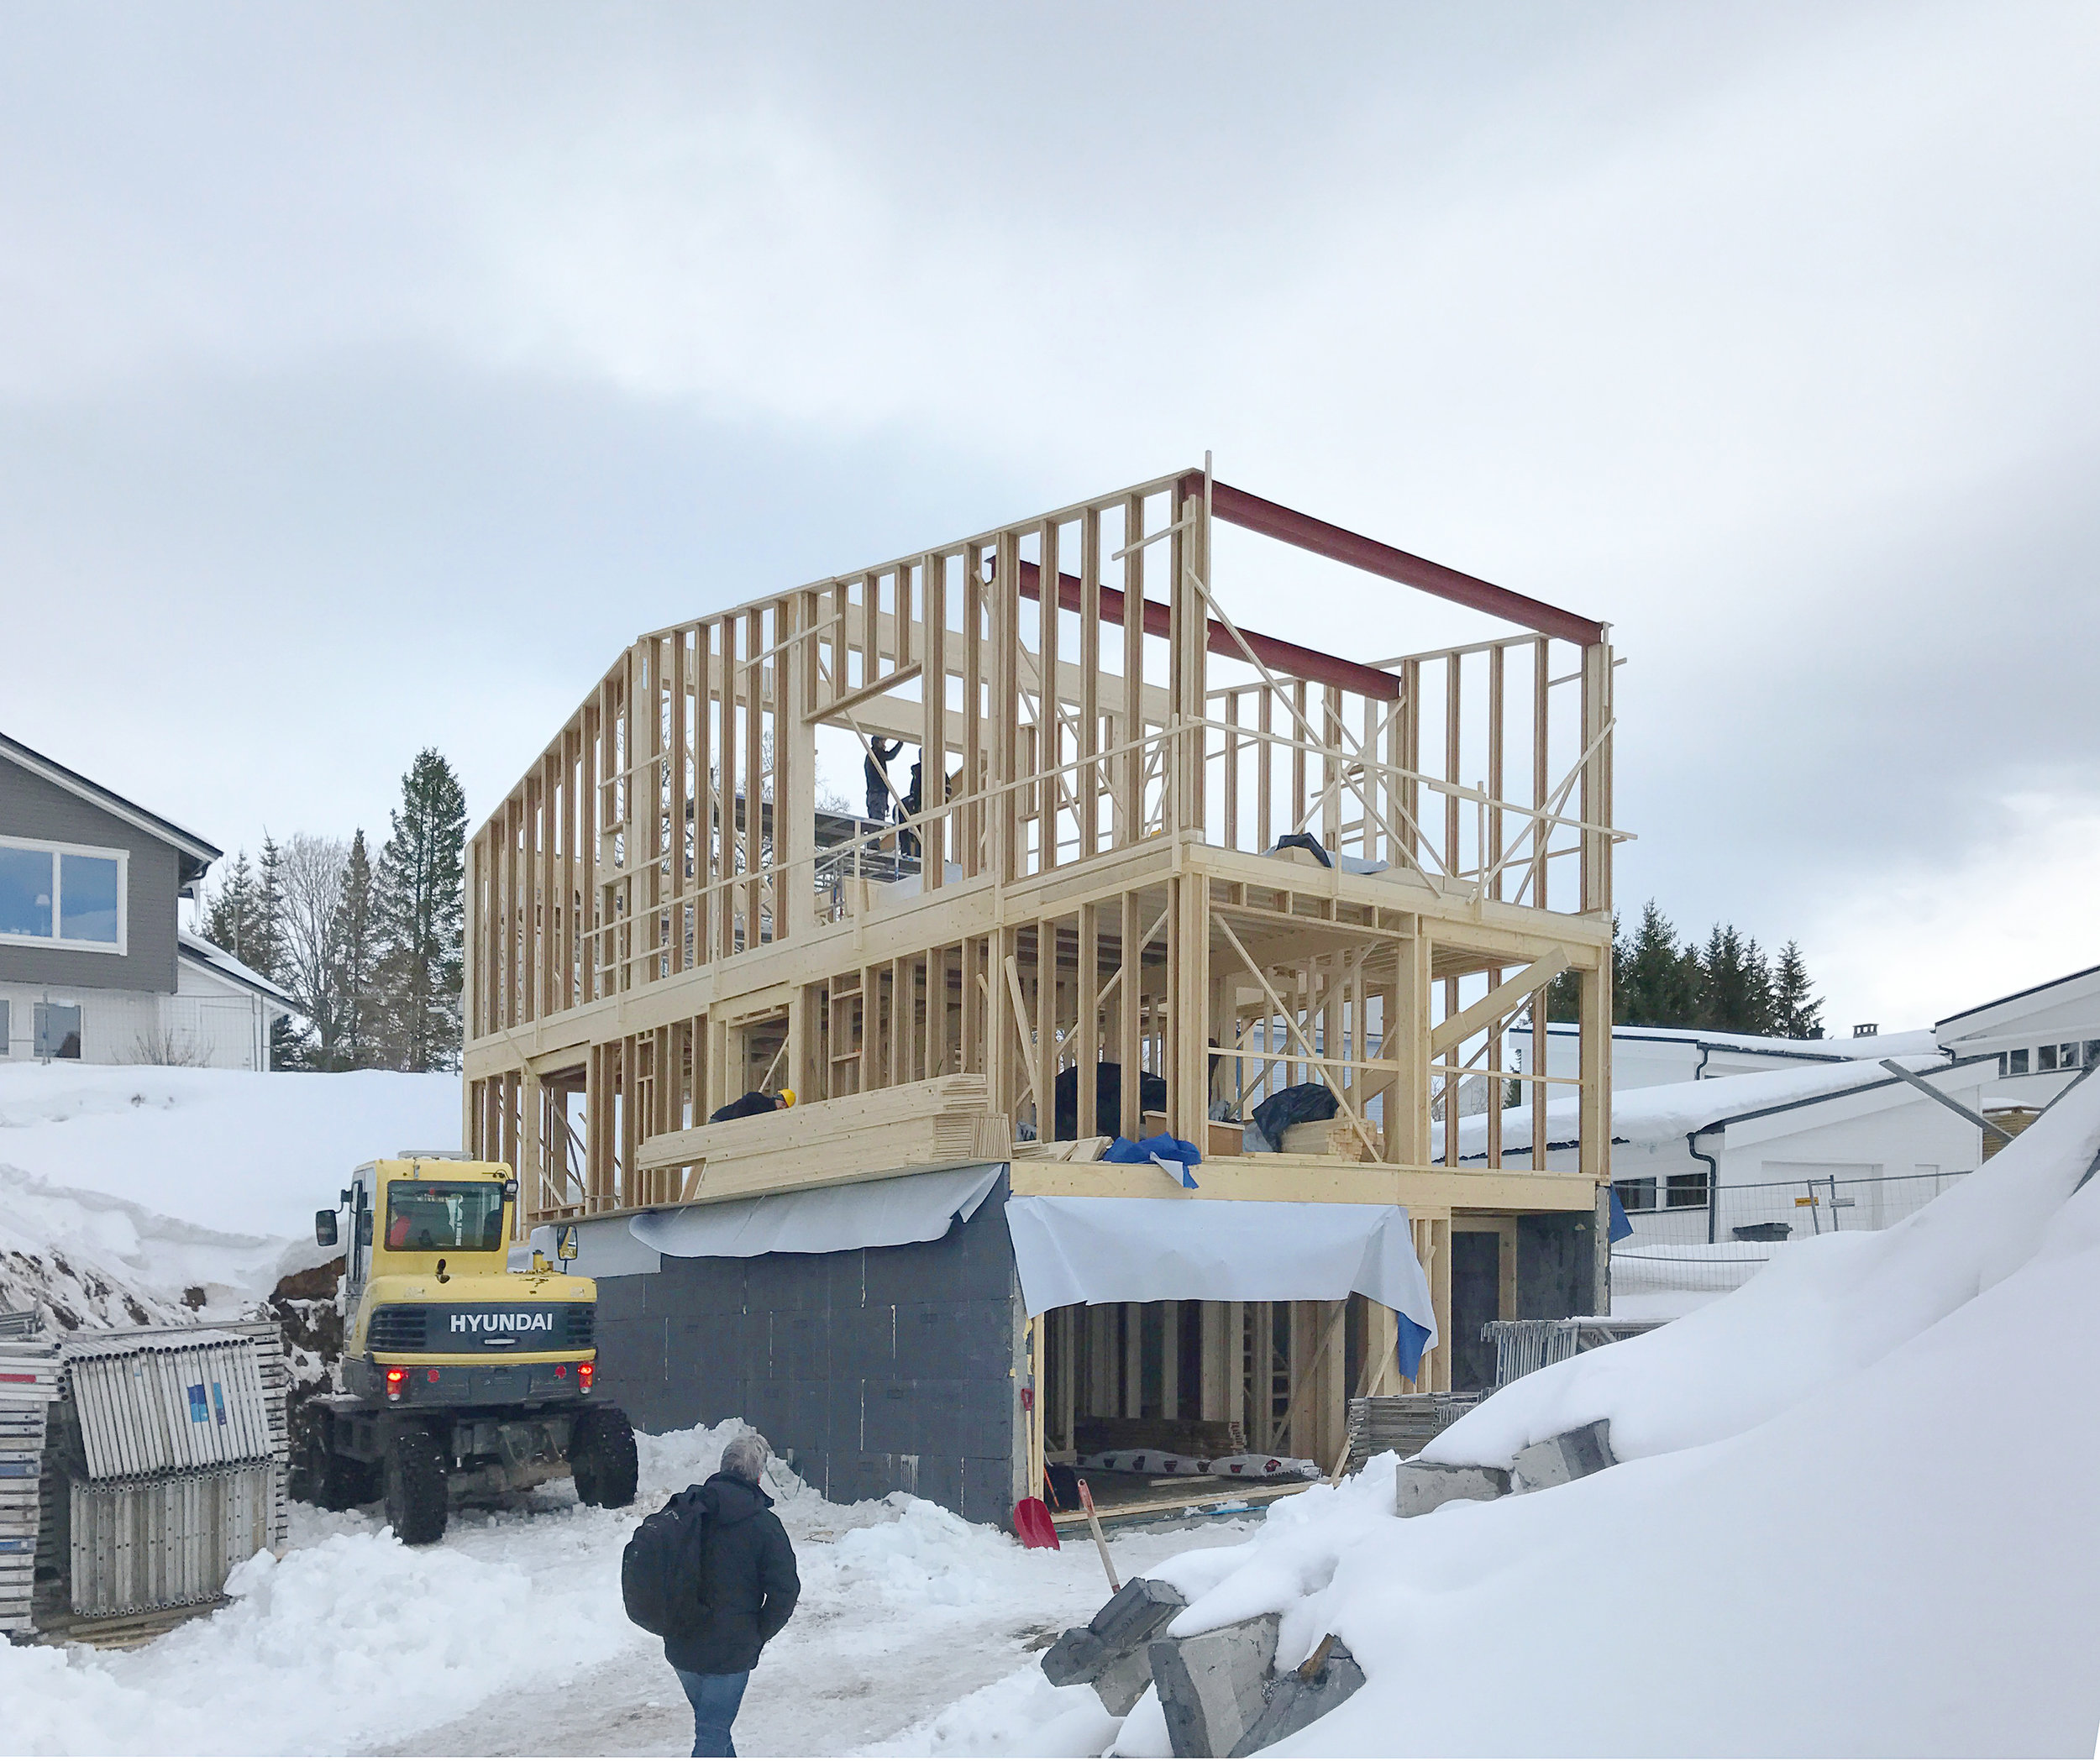 Construction on Martinurdalsveg, double house in Tromsø  has reached a key stage